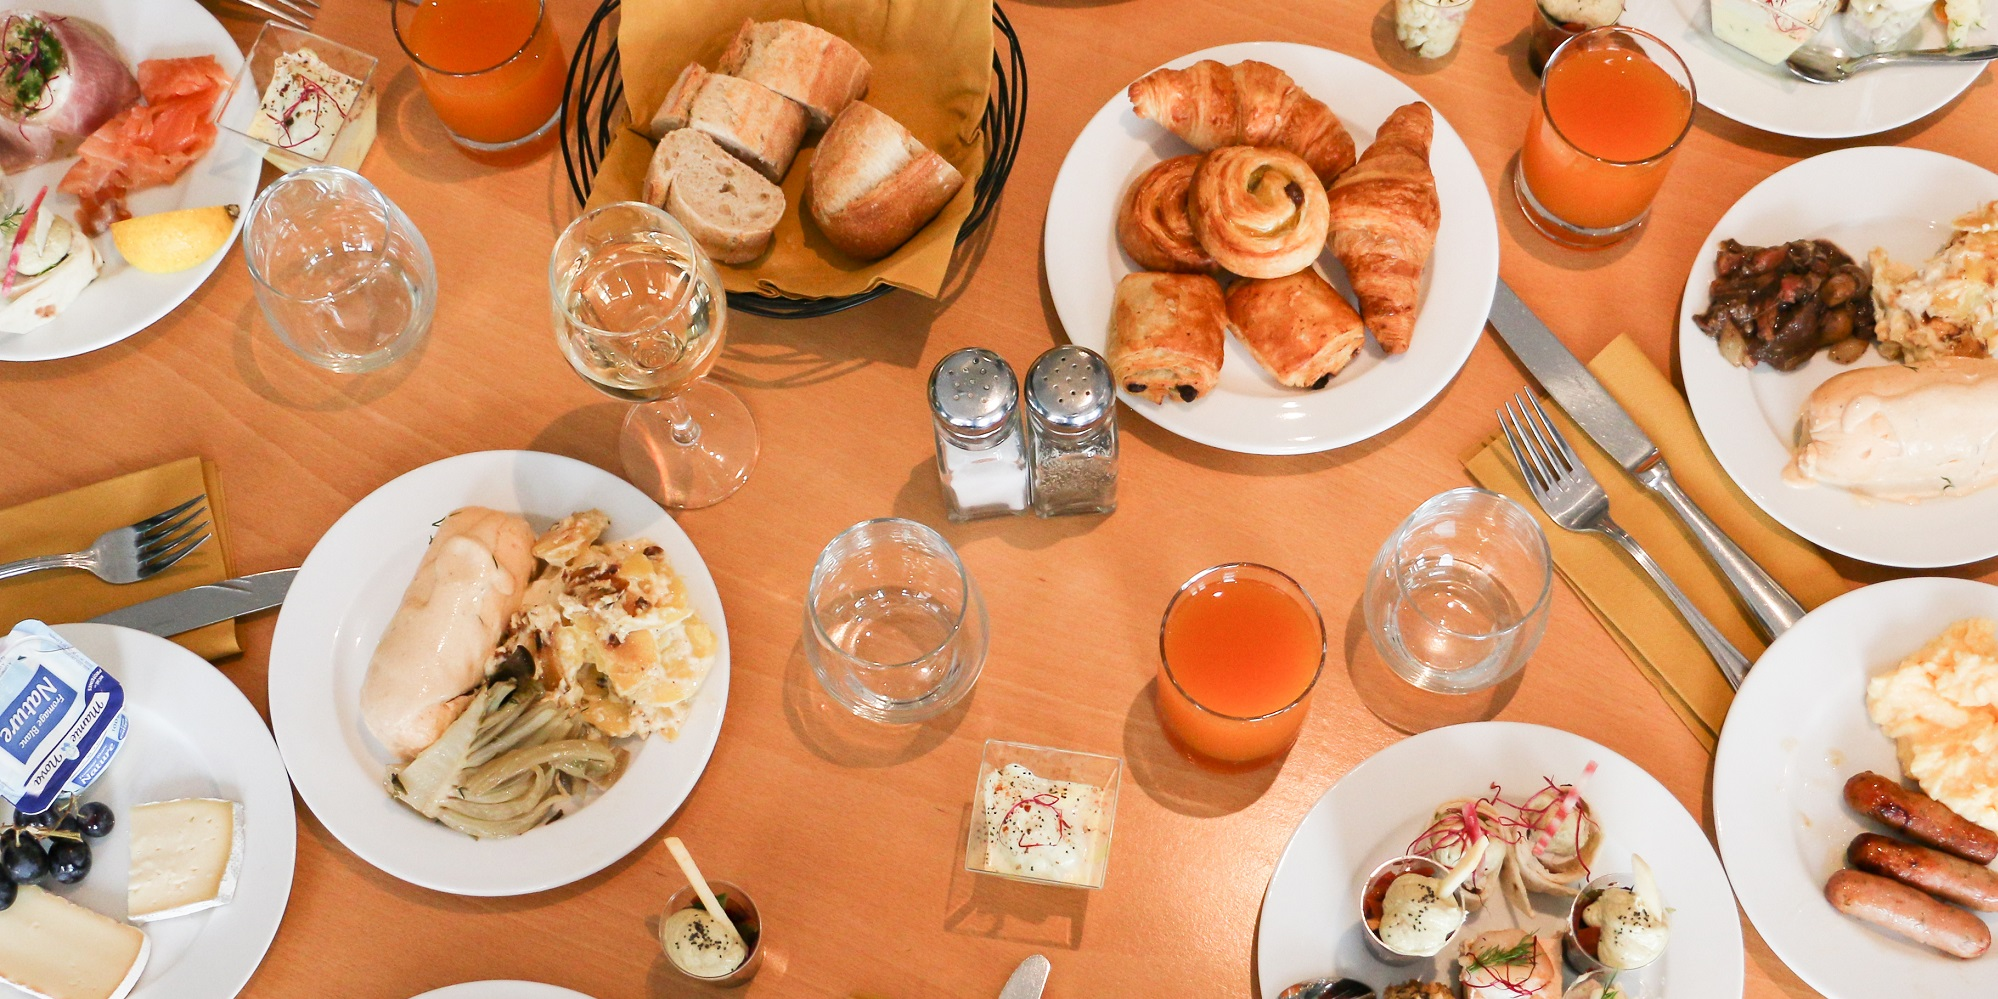 Brunch Café Flow (69890 La Tour-de-Salvagny)